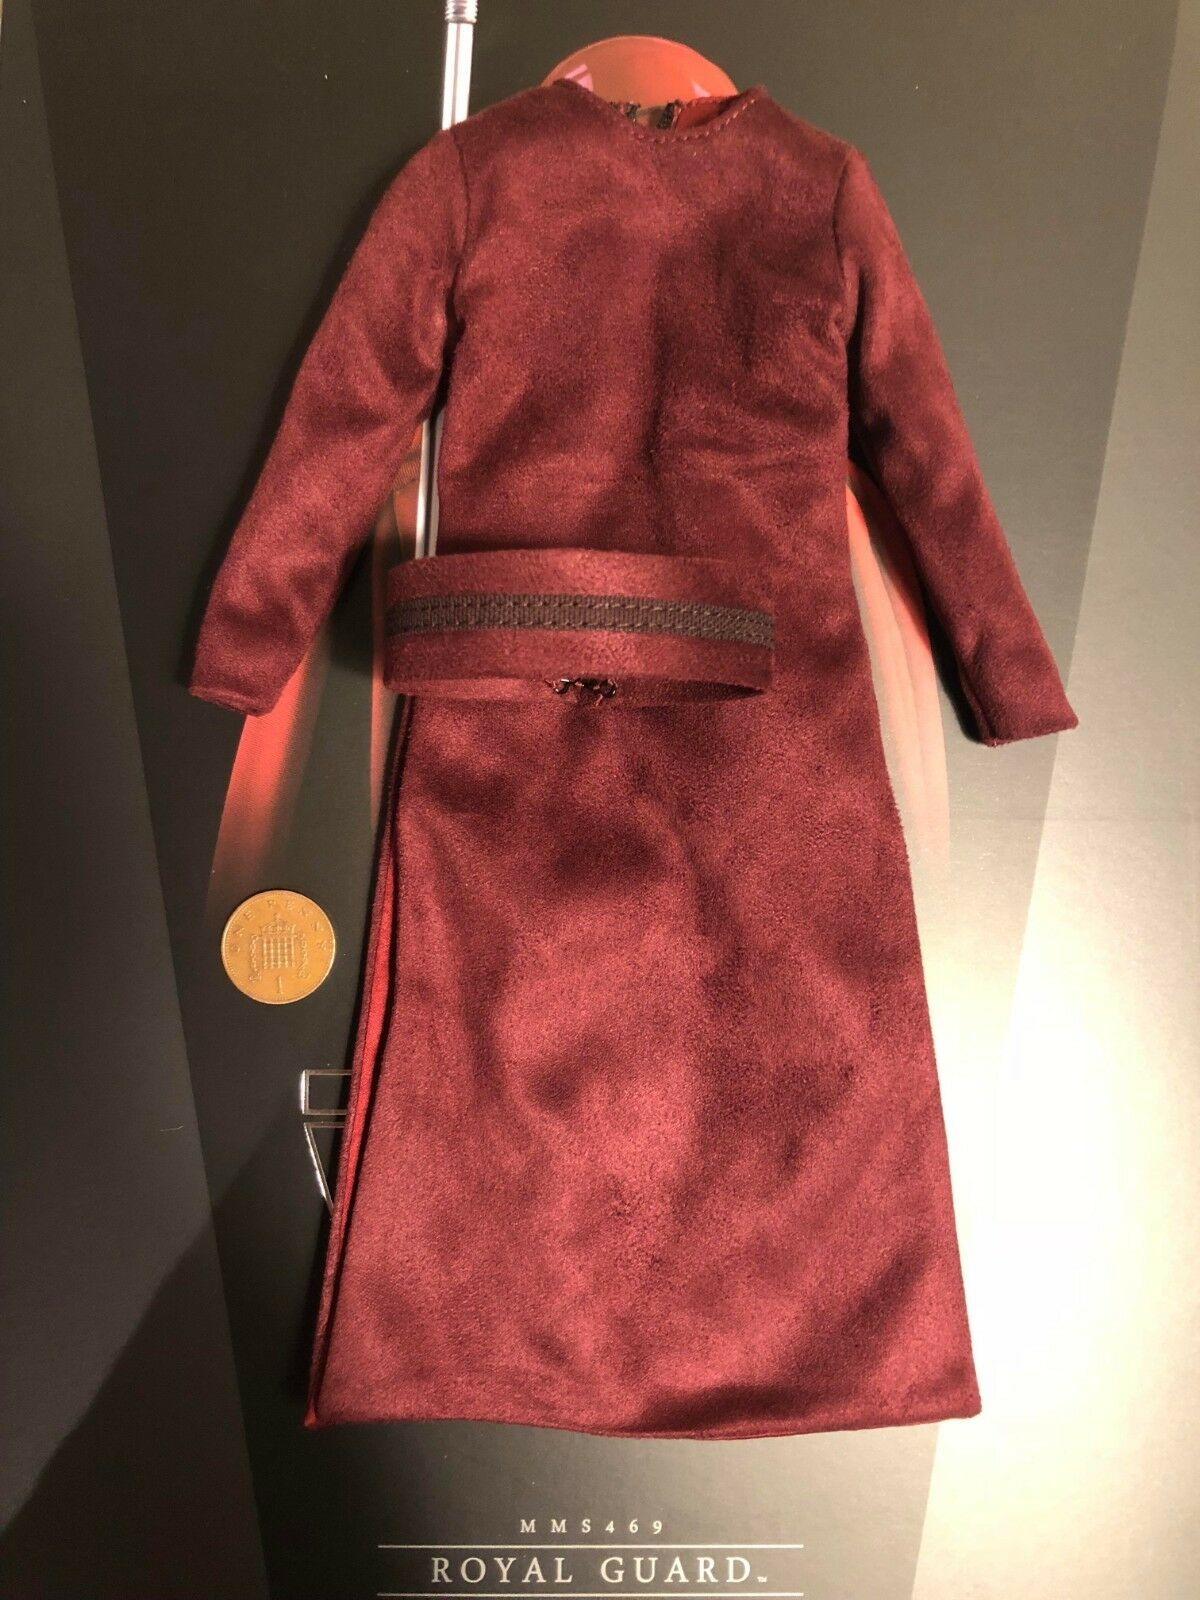 Hot Hot Hot Toys Star Wars ROTJ Royal Guard MMS469 Under Robes loose 1 6th scale 98541e